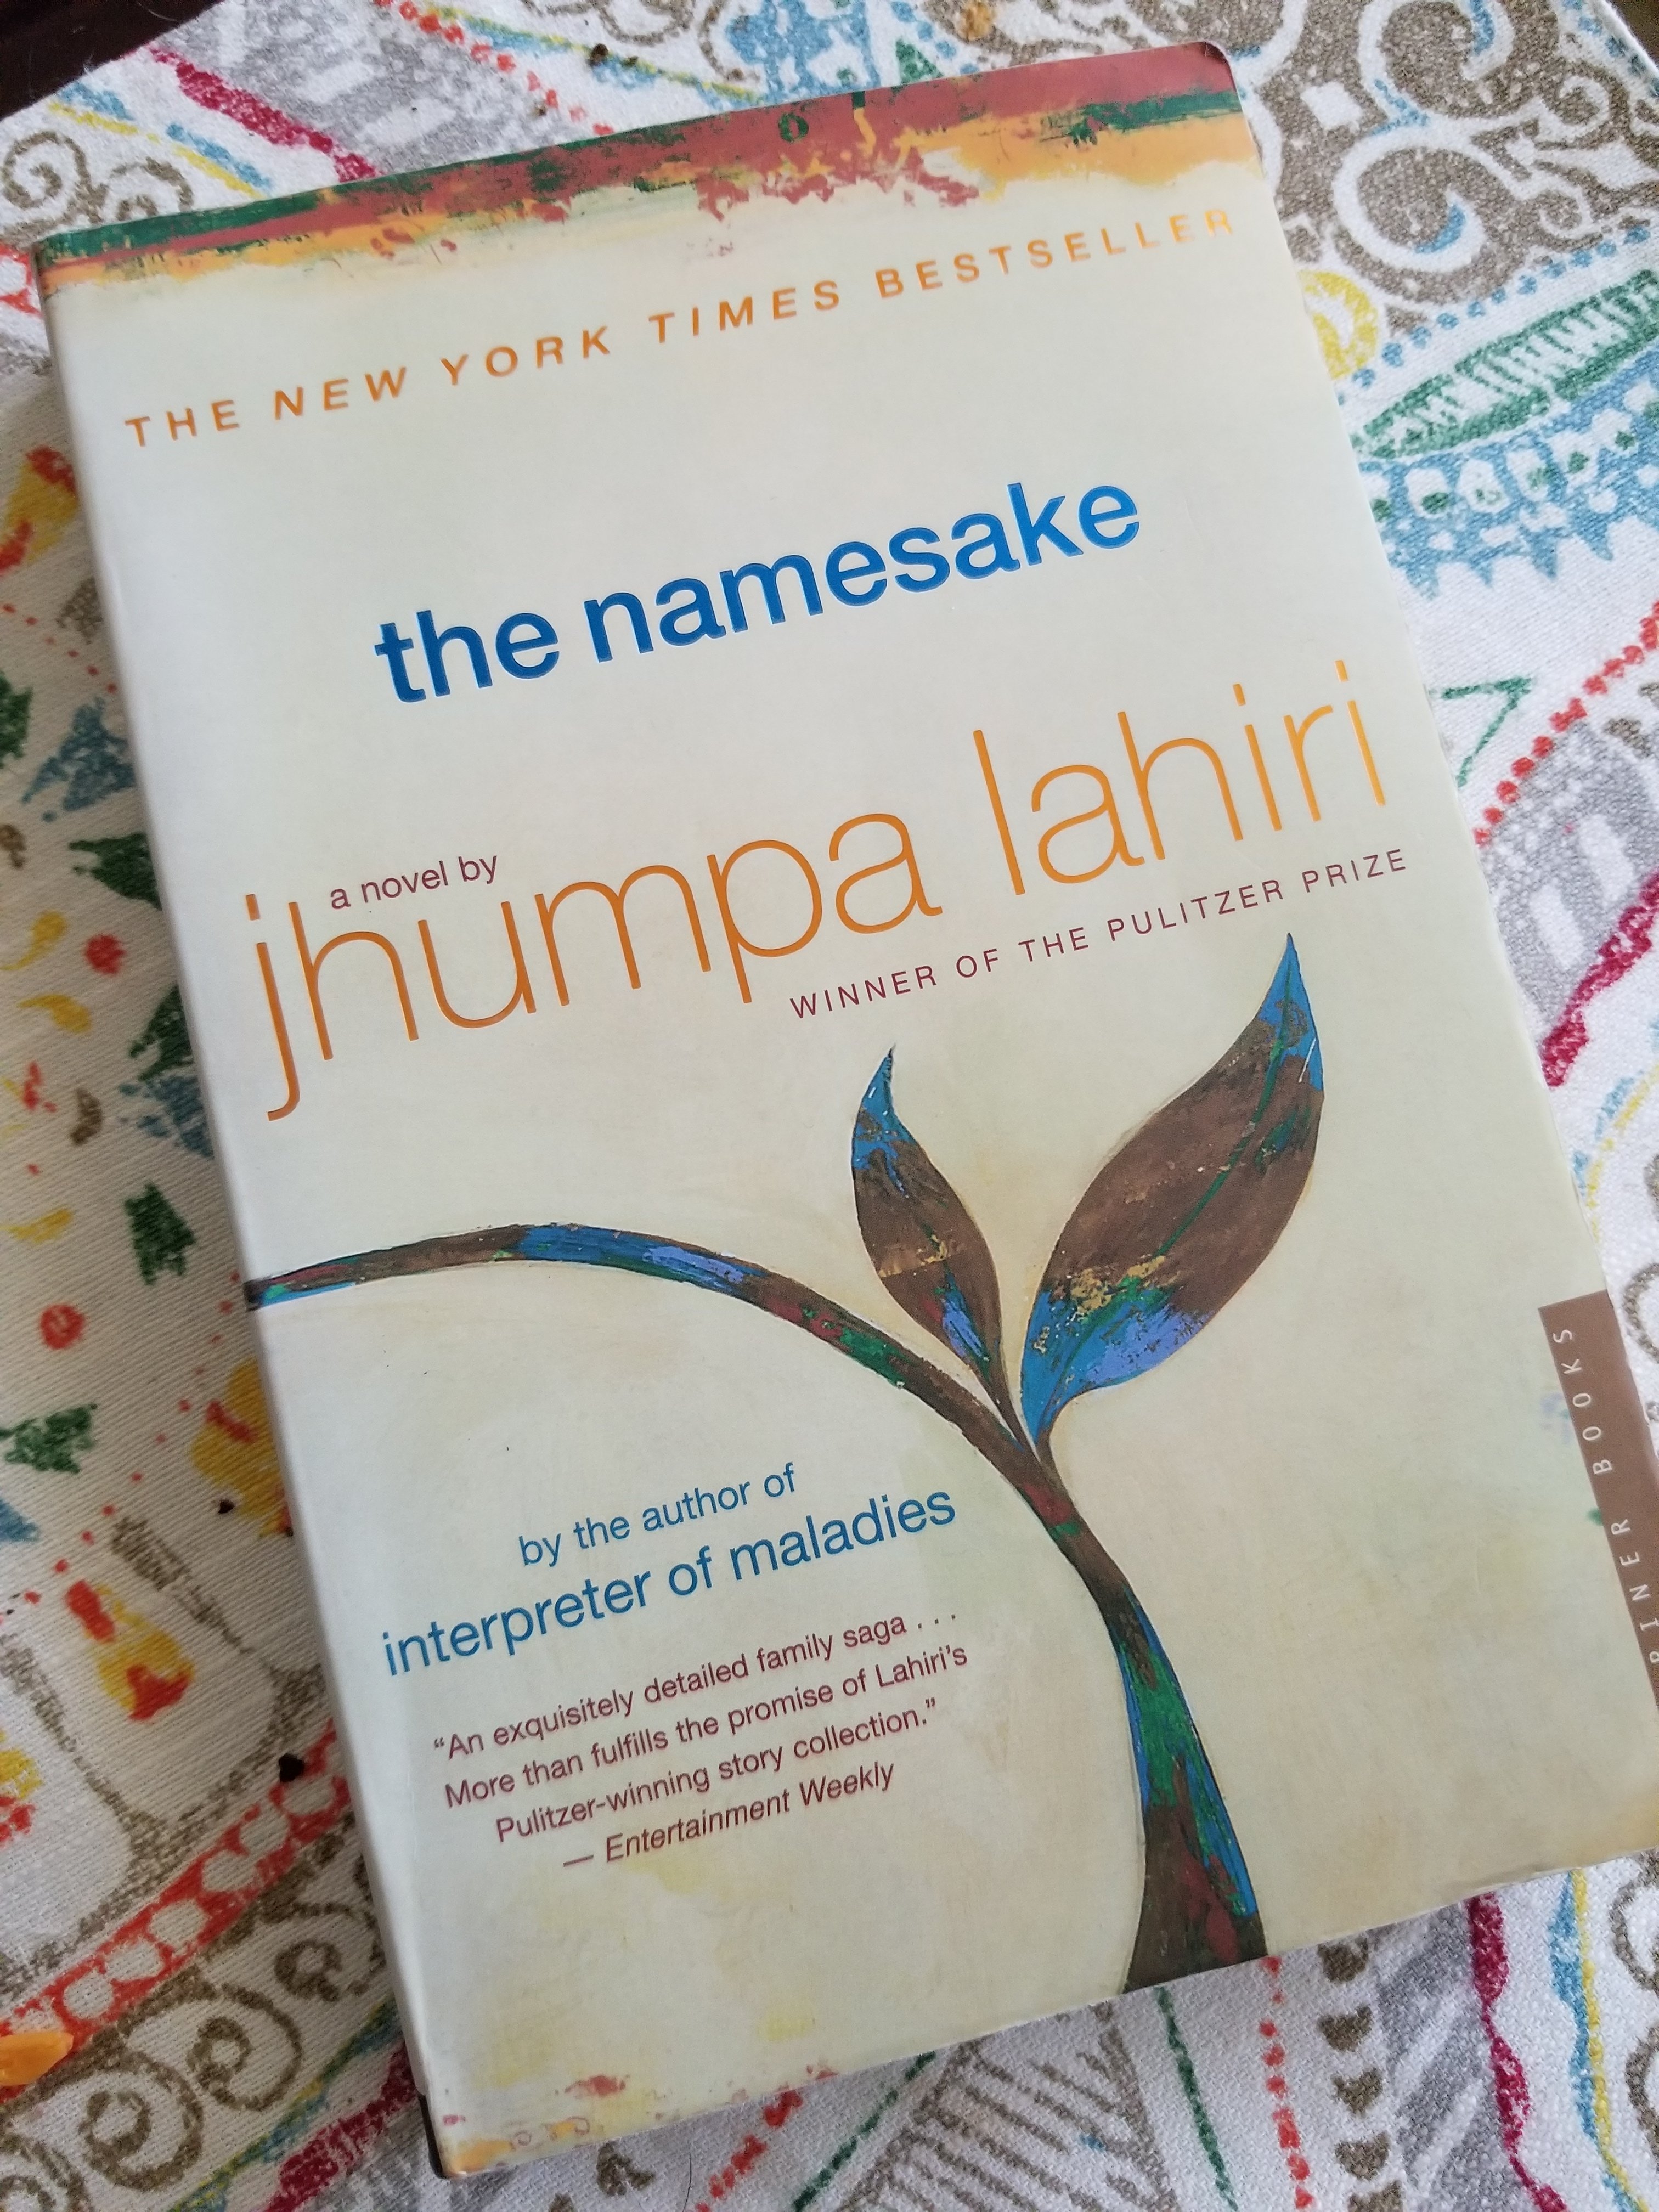 the namesake by jhumpa lahiri essay The namesake by jhumpa lahiri: a review essay belonging is an inevitable human condition which empowers an individual for better or sometimes for worse an individual's perceptions of belonging evolve in response to the passage of time and interaction with their world.